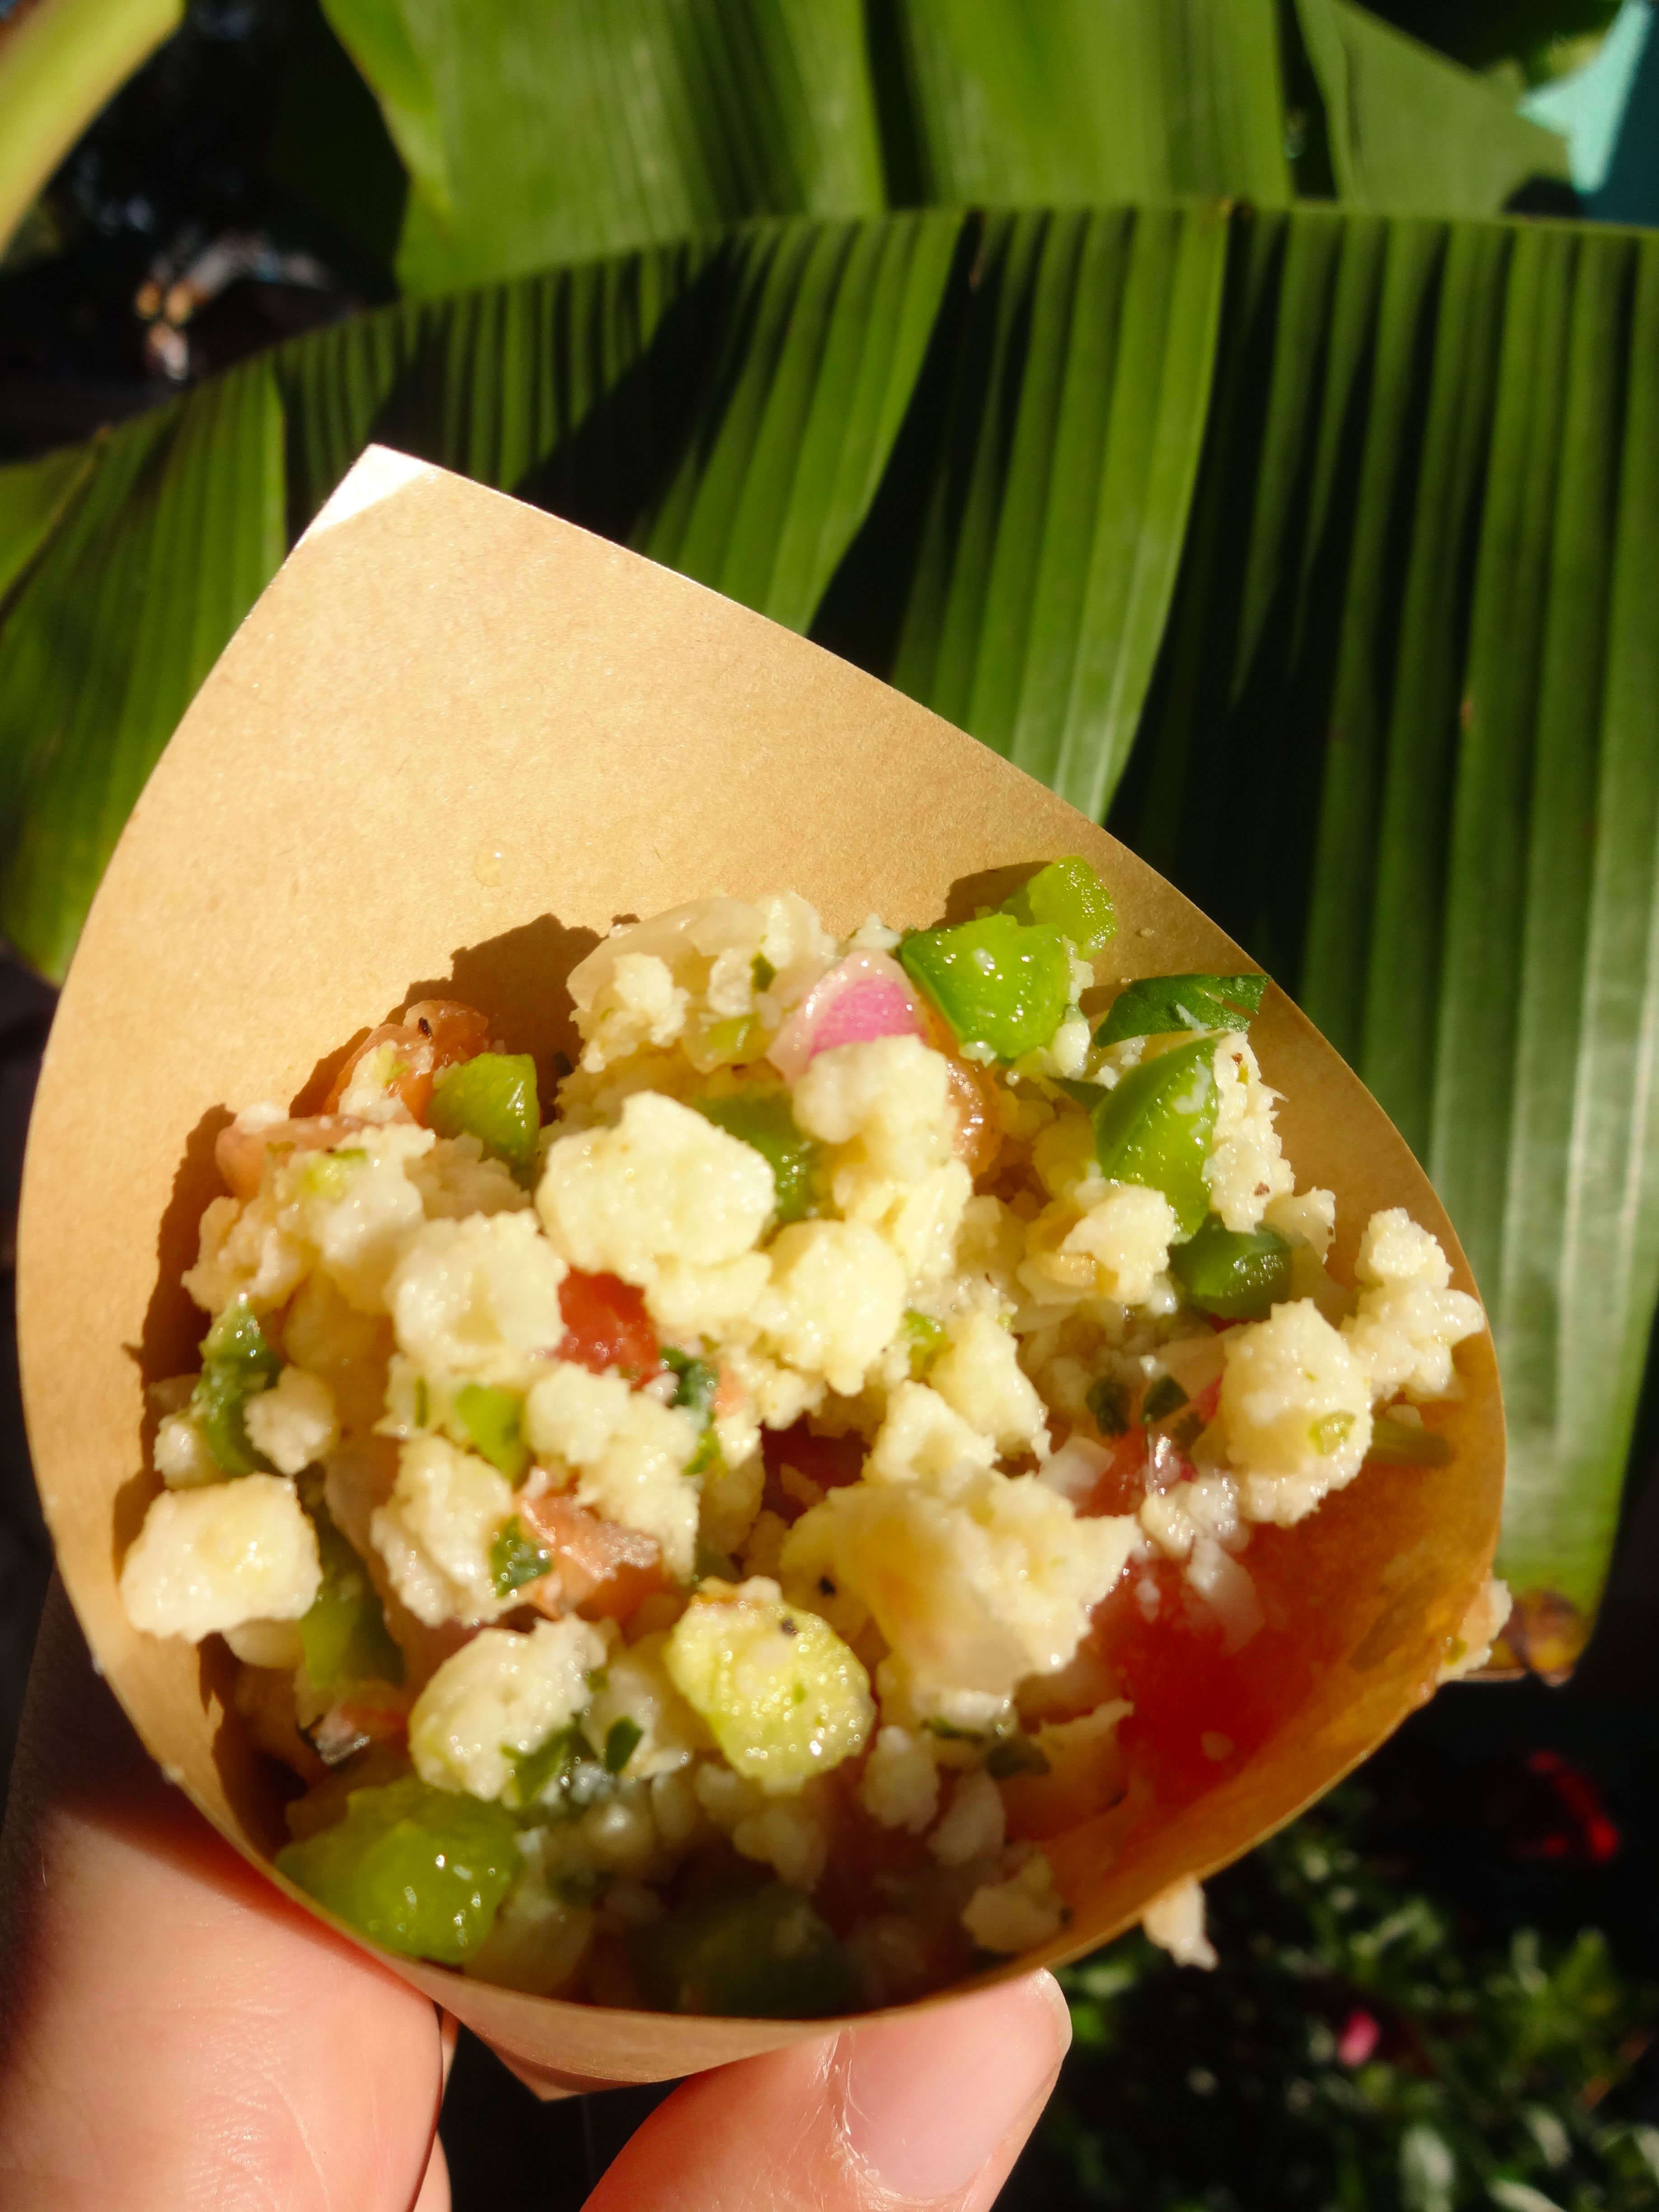 Epcot Food and Wine Dishes 2014